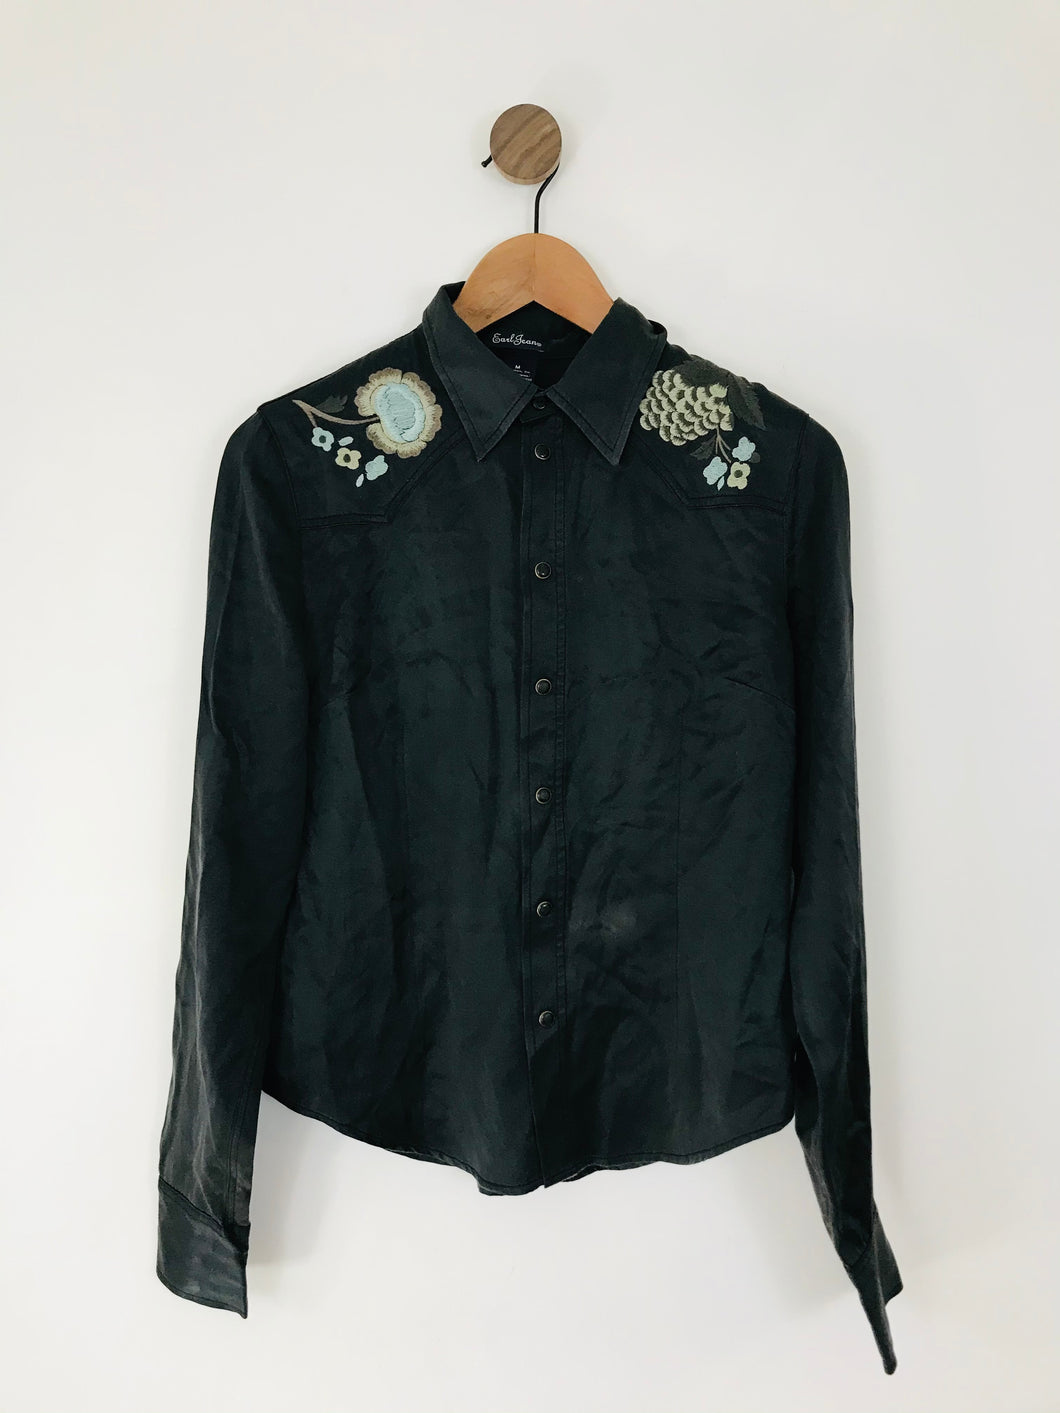 Earl Jean Women's Silk Embroidered Shirt | M UK10-12 | Black